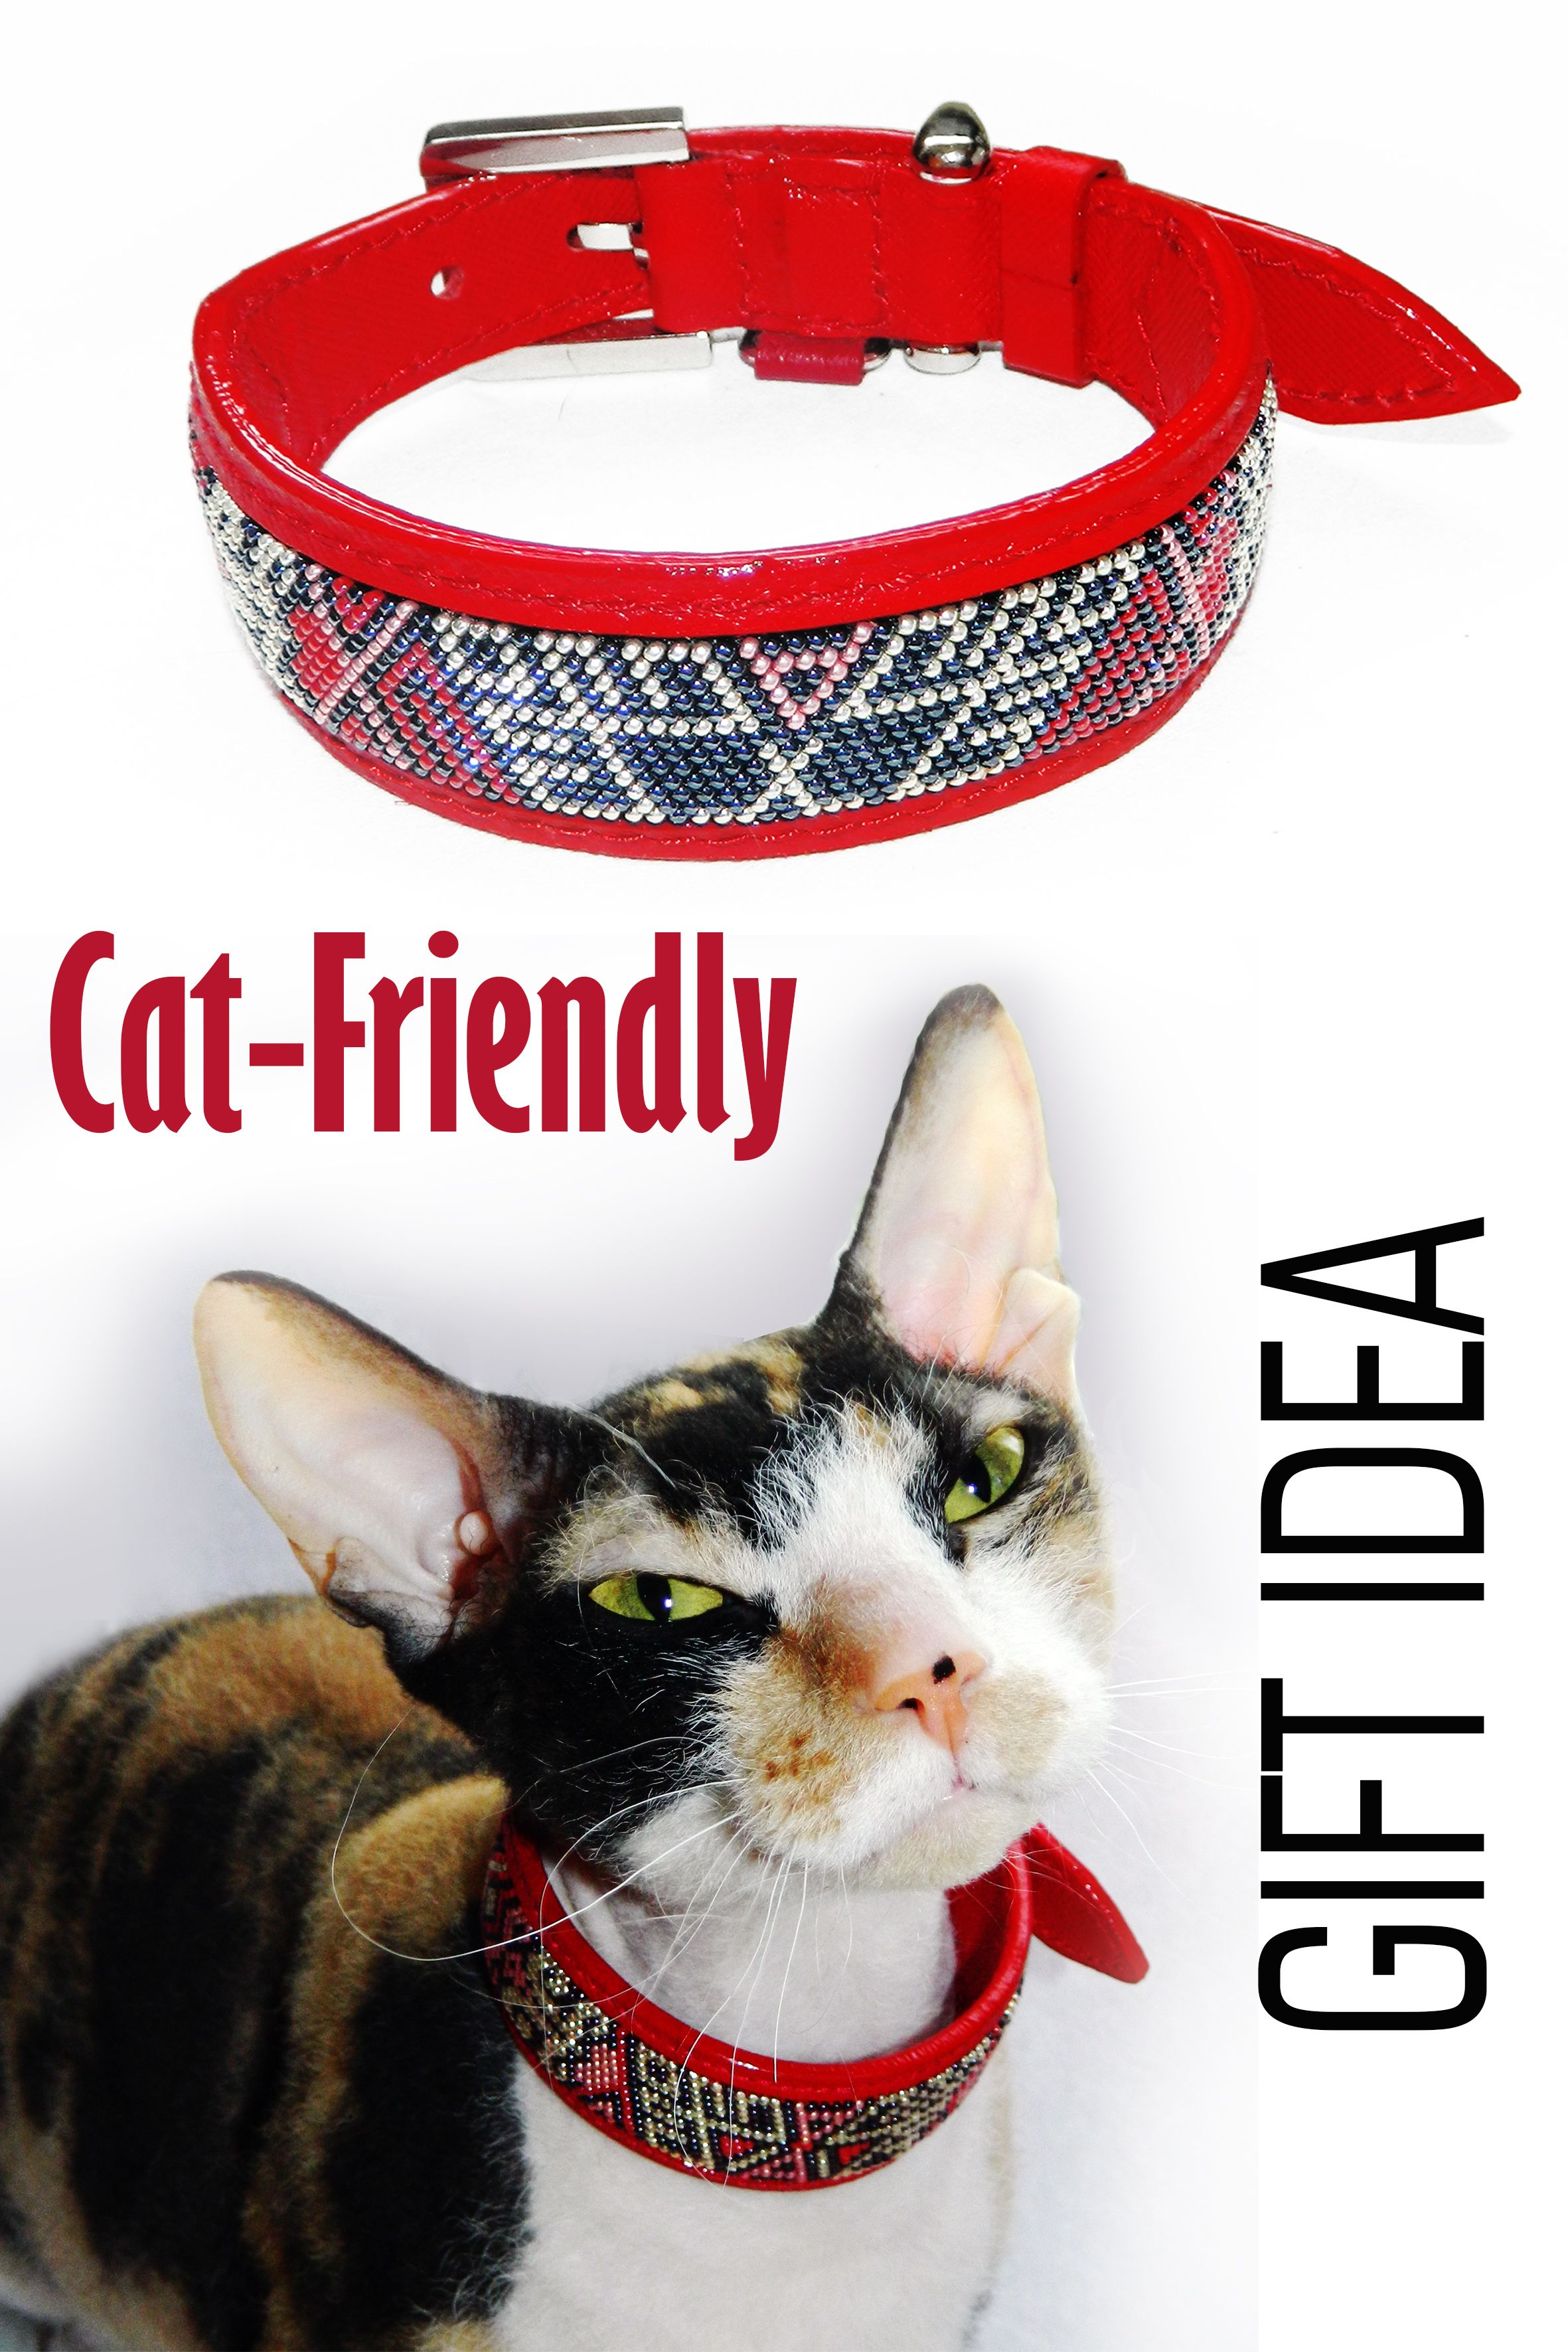 Leather Cat Collar With Knitted Slavic Beaded Ornaments In 2020 Leather Cat Collars Fancy Cat Collar Leather Dog Collars